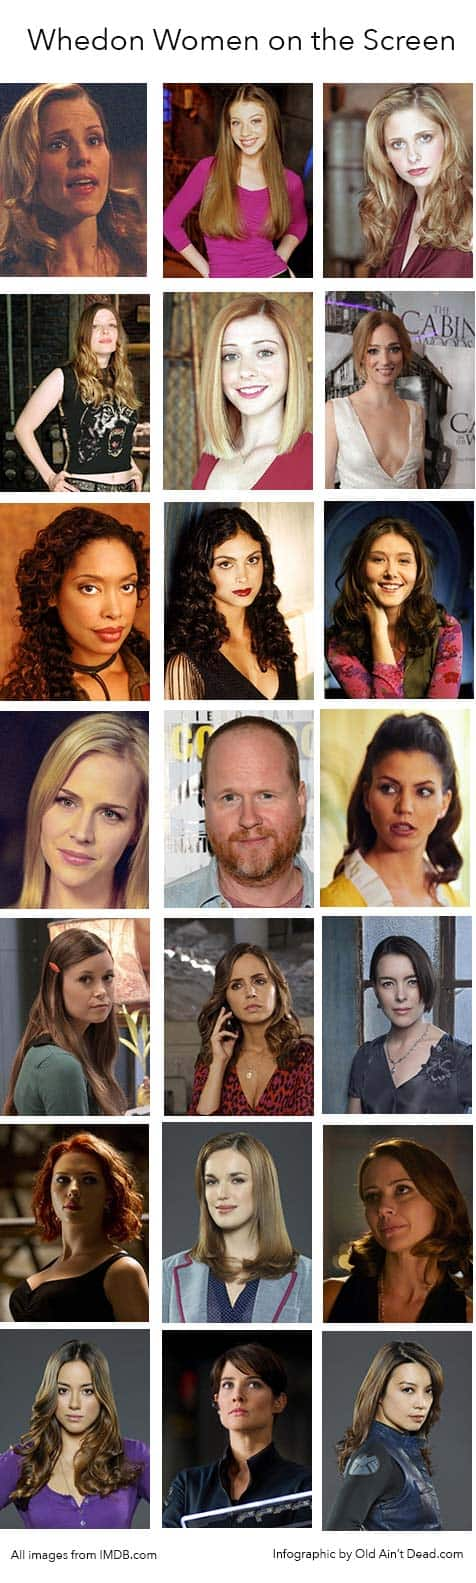 Whedon Women